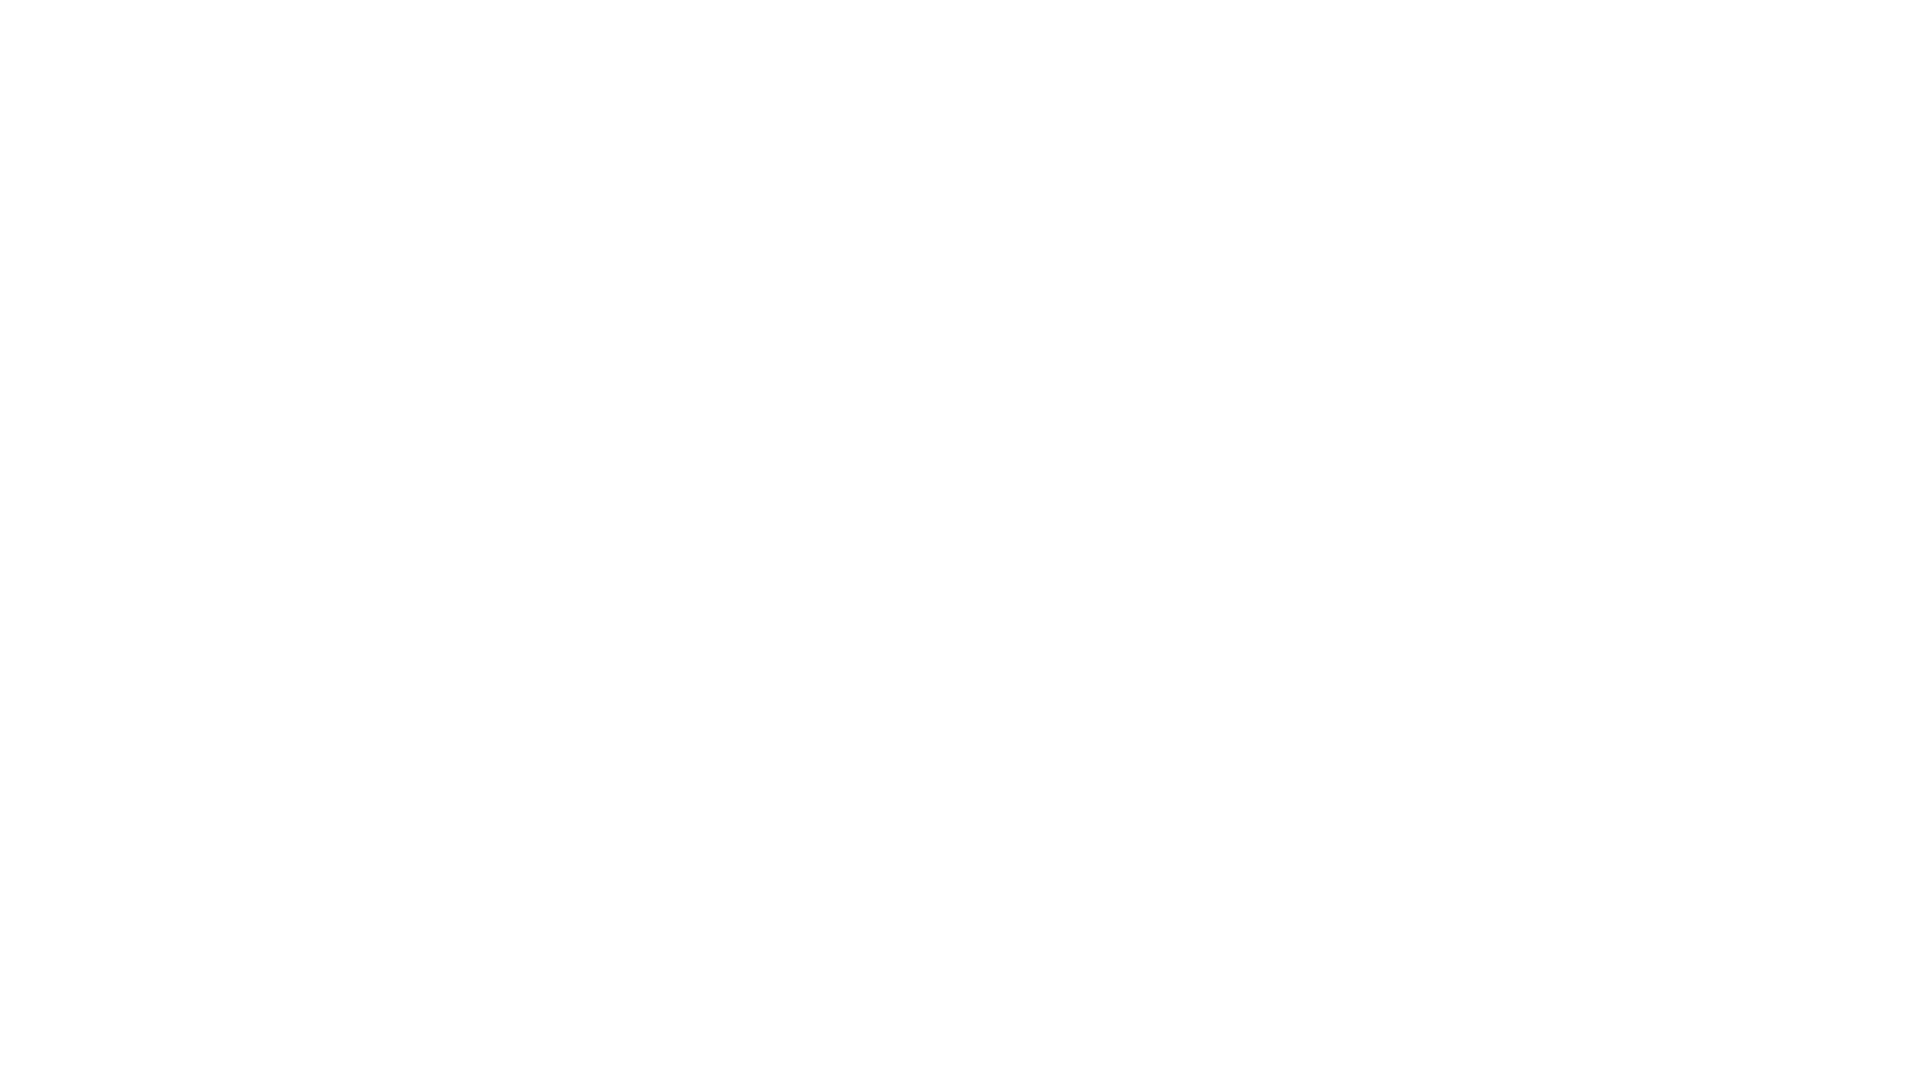 Waymaker.Church